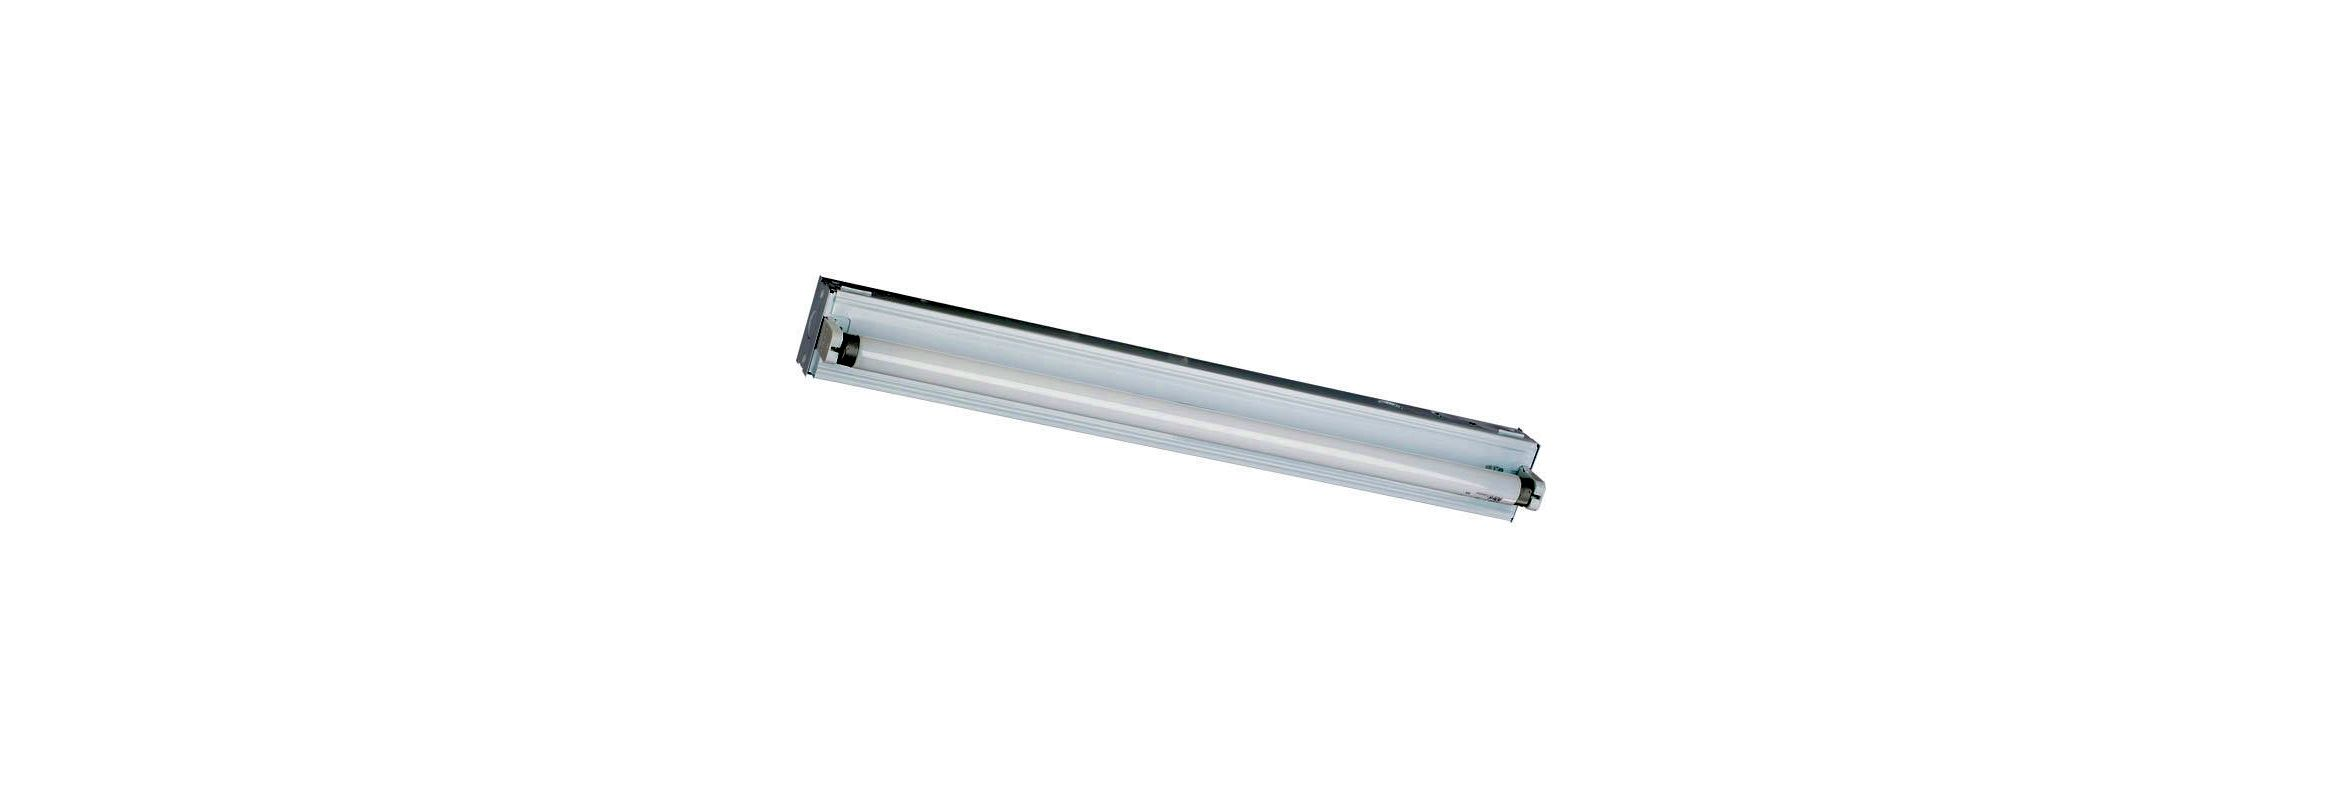 Quorum International Q80024-1 1 Light Flushmount Fluorescent Energy